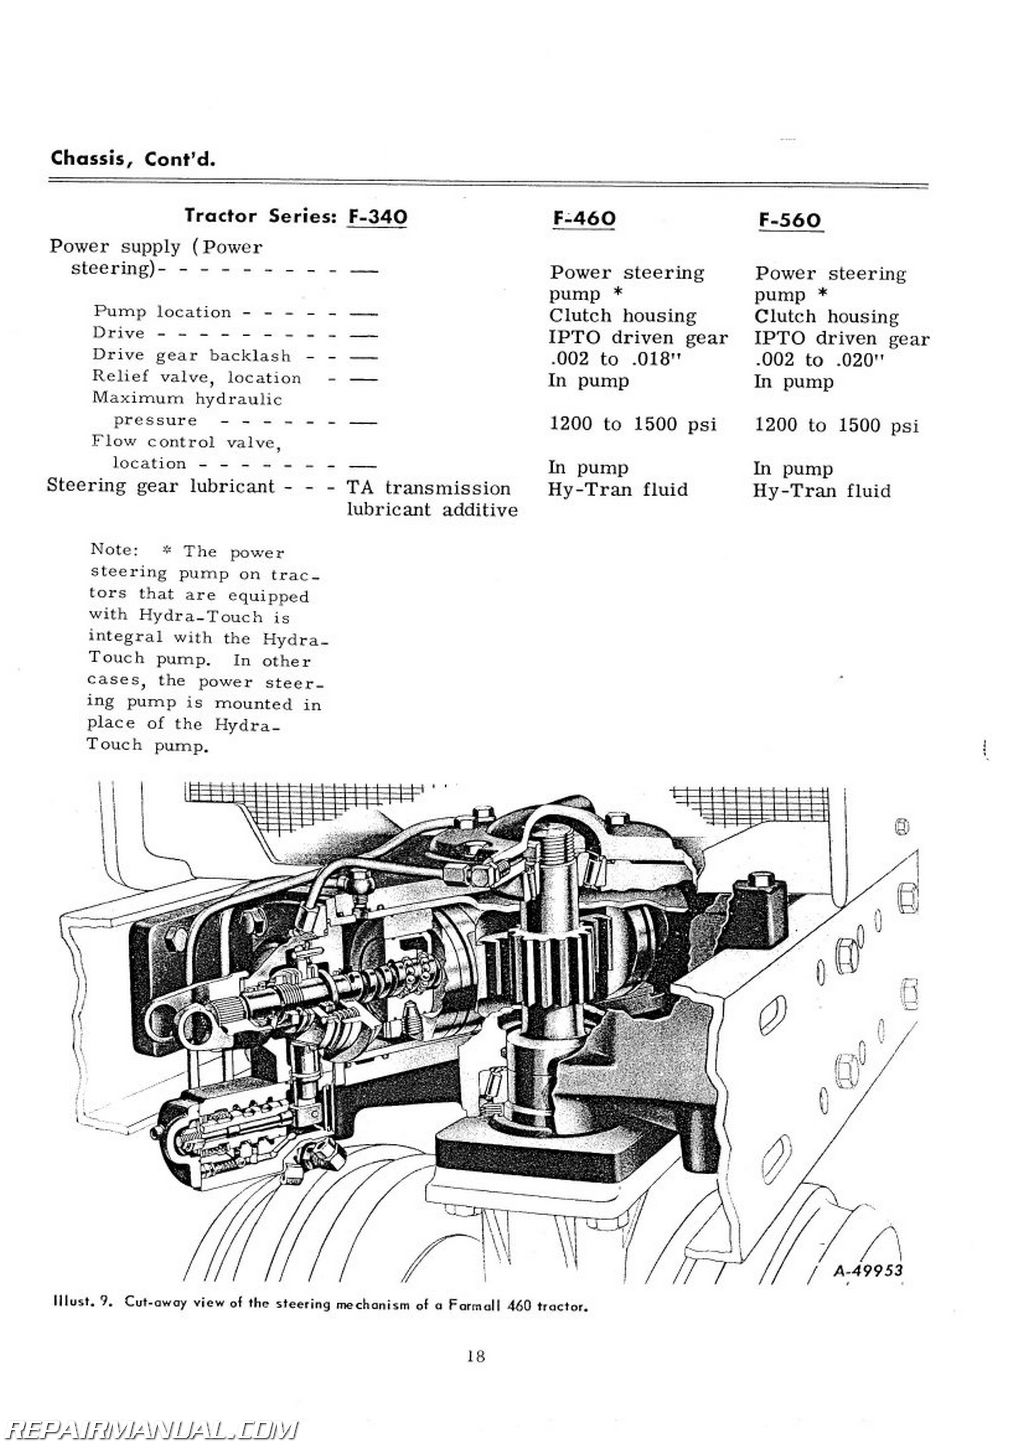 farmall 460 transmission diagram schematics wiring diagrams u2022 rh  parntesis co Farmall 460 Diesel Farmall 460 Hydraulic Problems